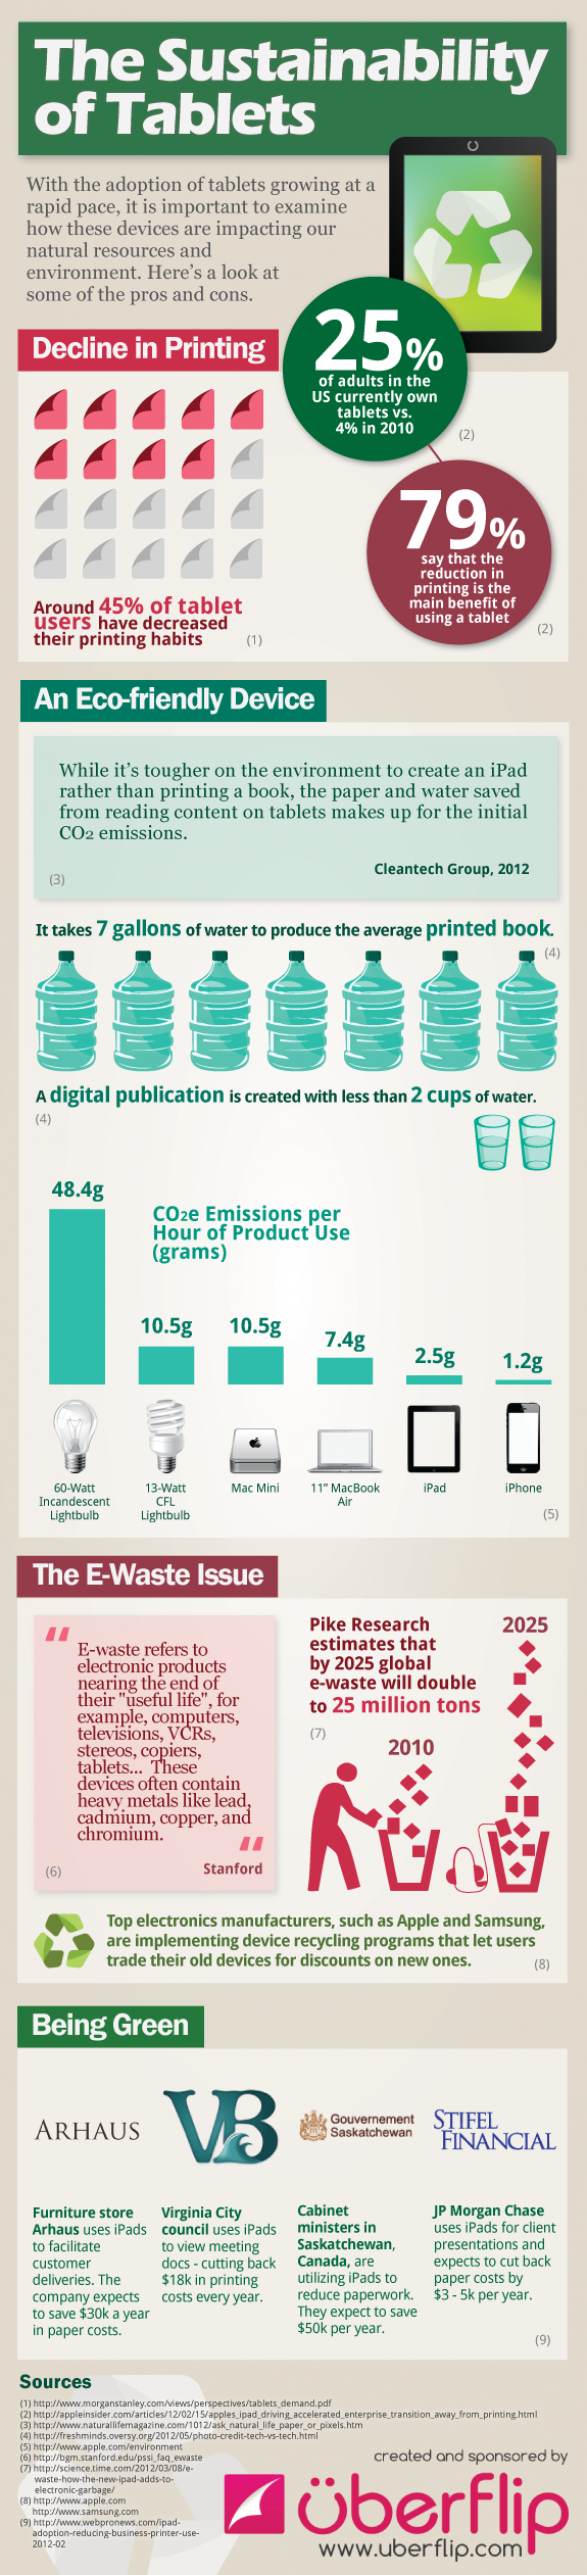 The Sustainability of Tablets